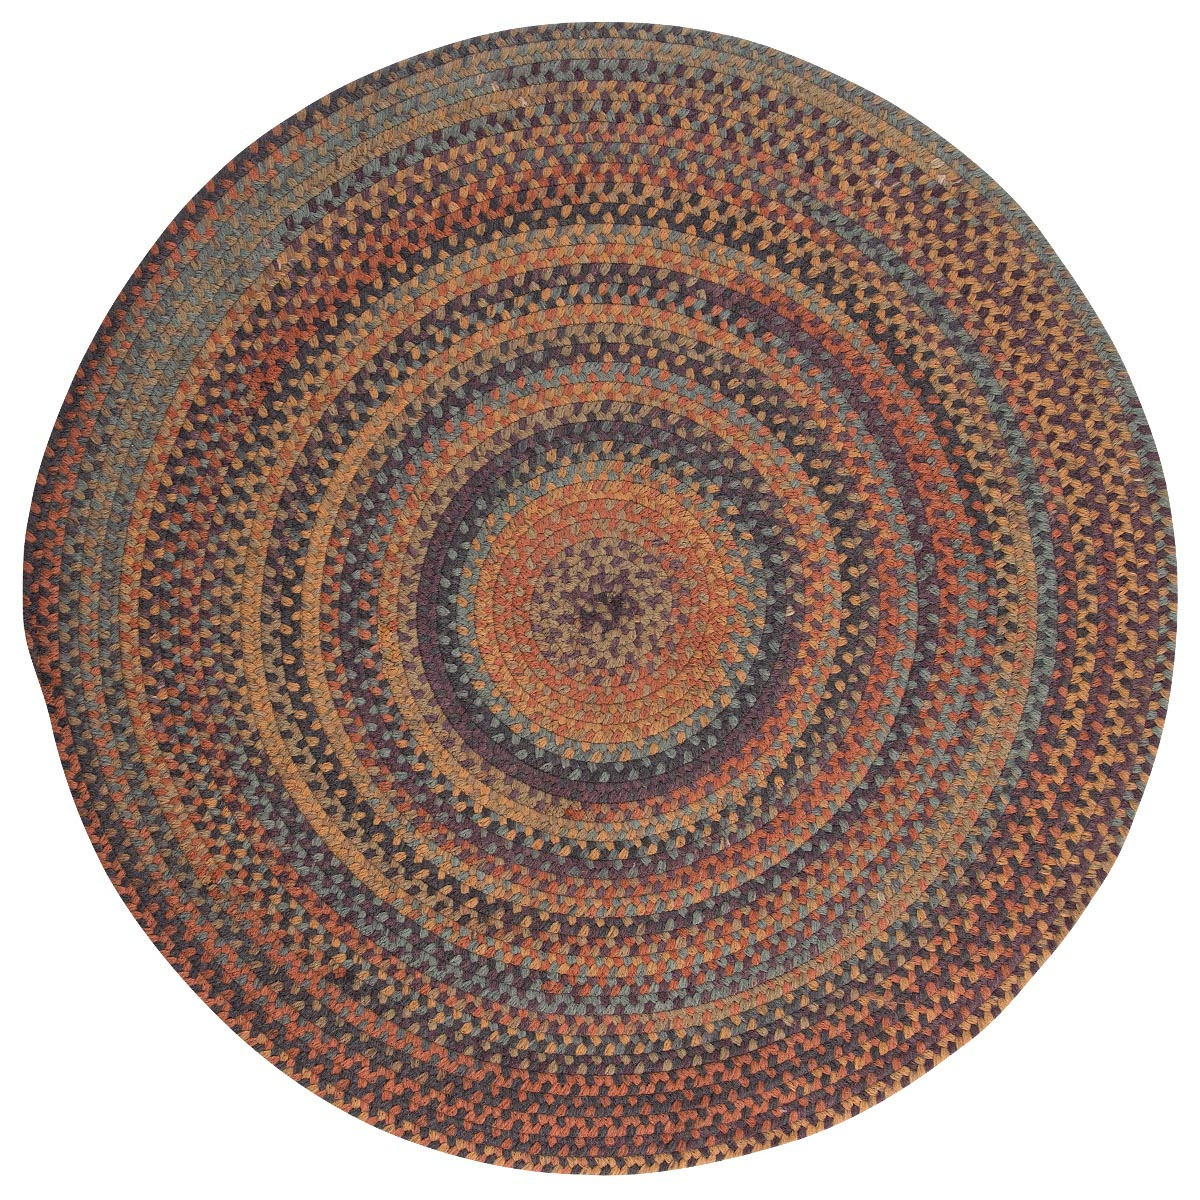 Rustica Floral Burst Wool Braided Round Rugs